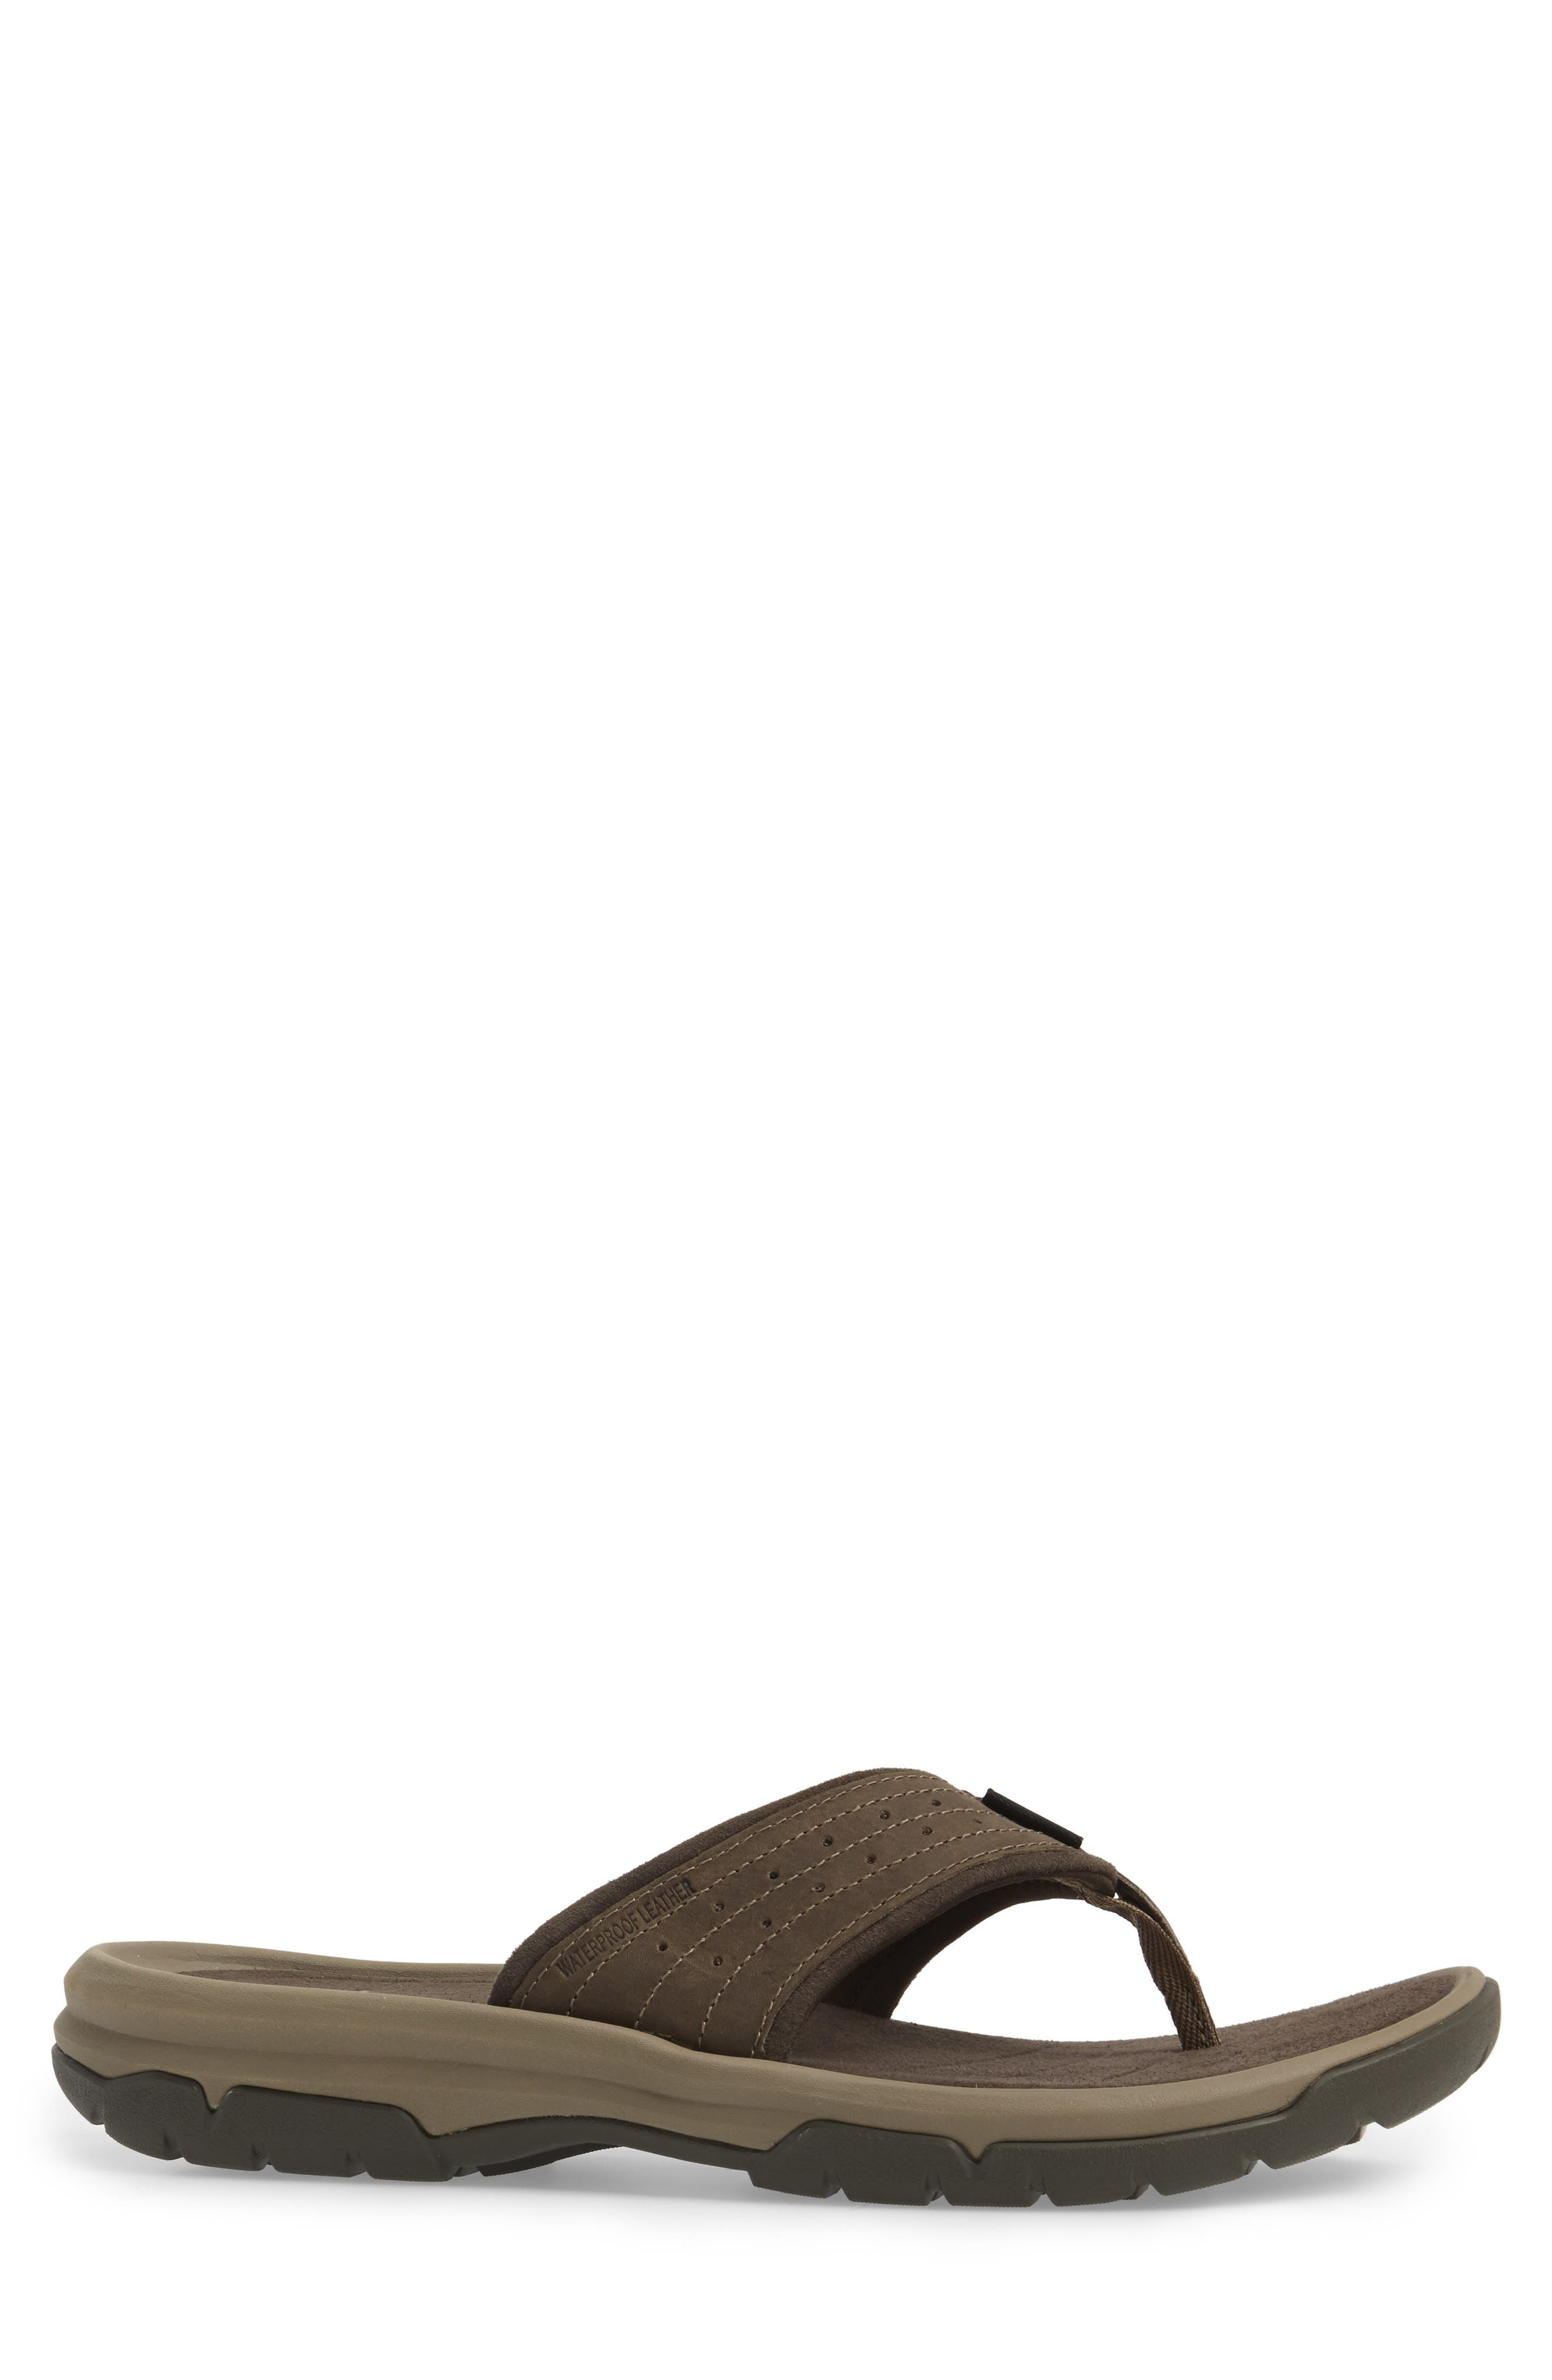 TEVA, Langdon Flip Flop, Alternate thumbnail 3, color, WALNUT